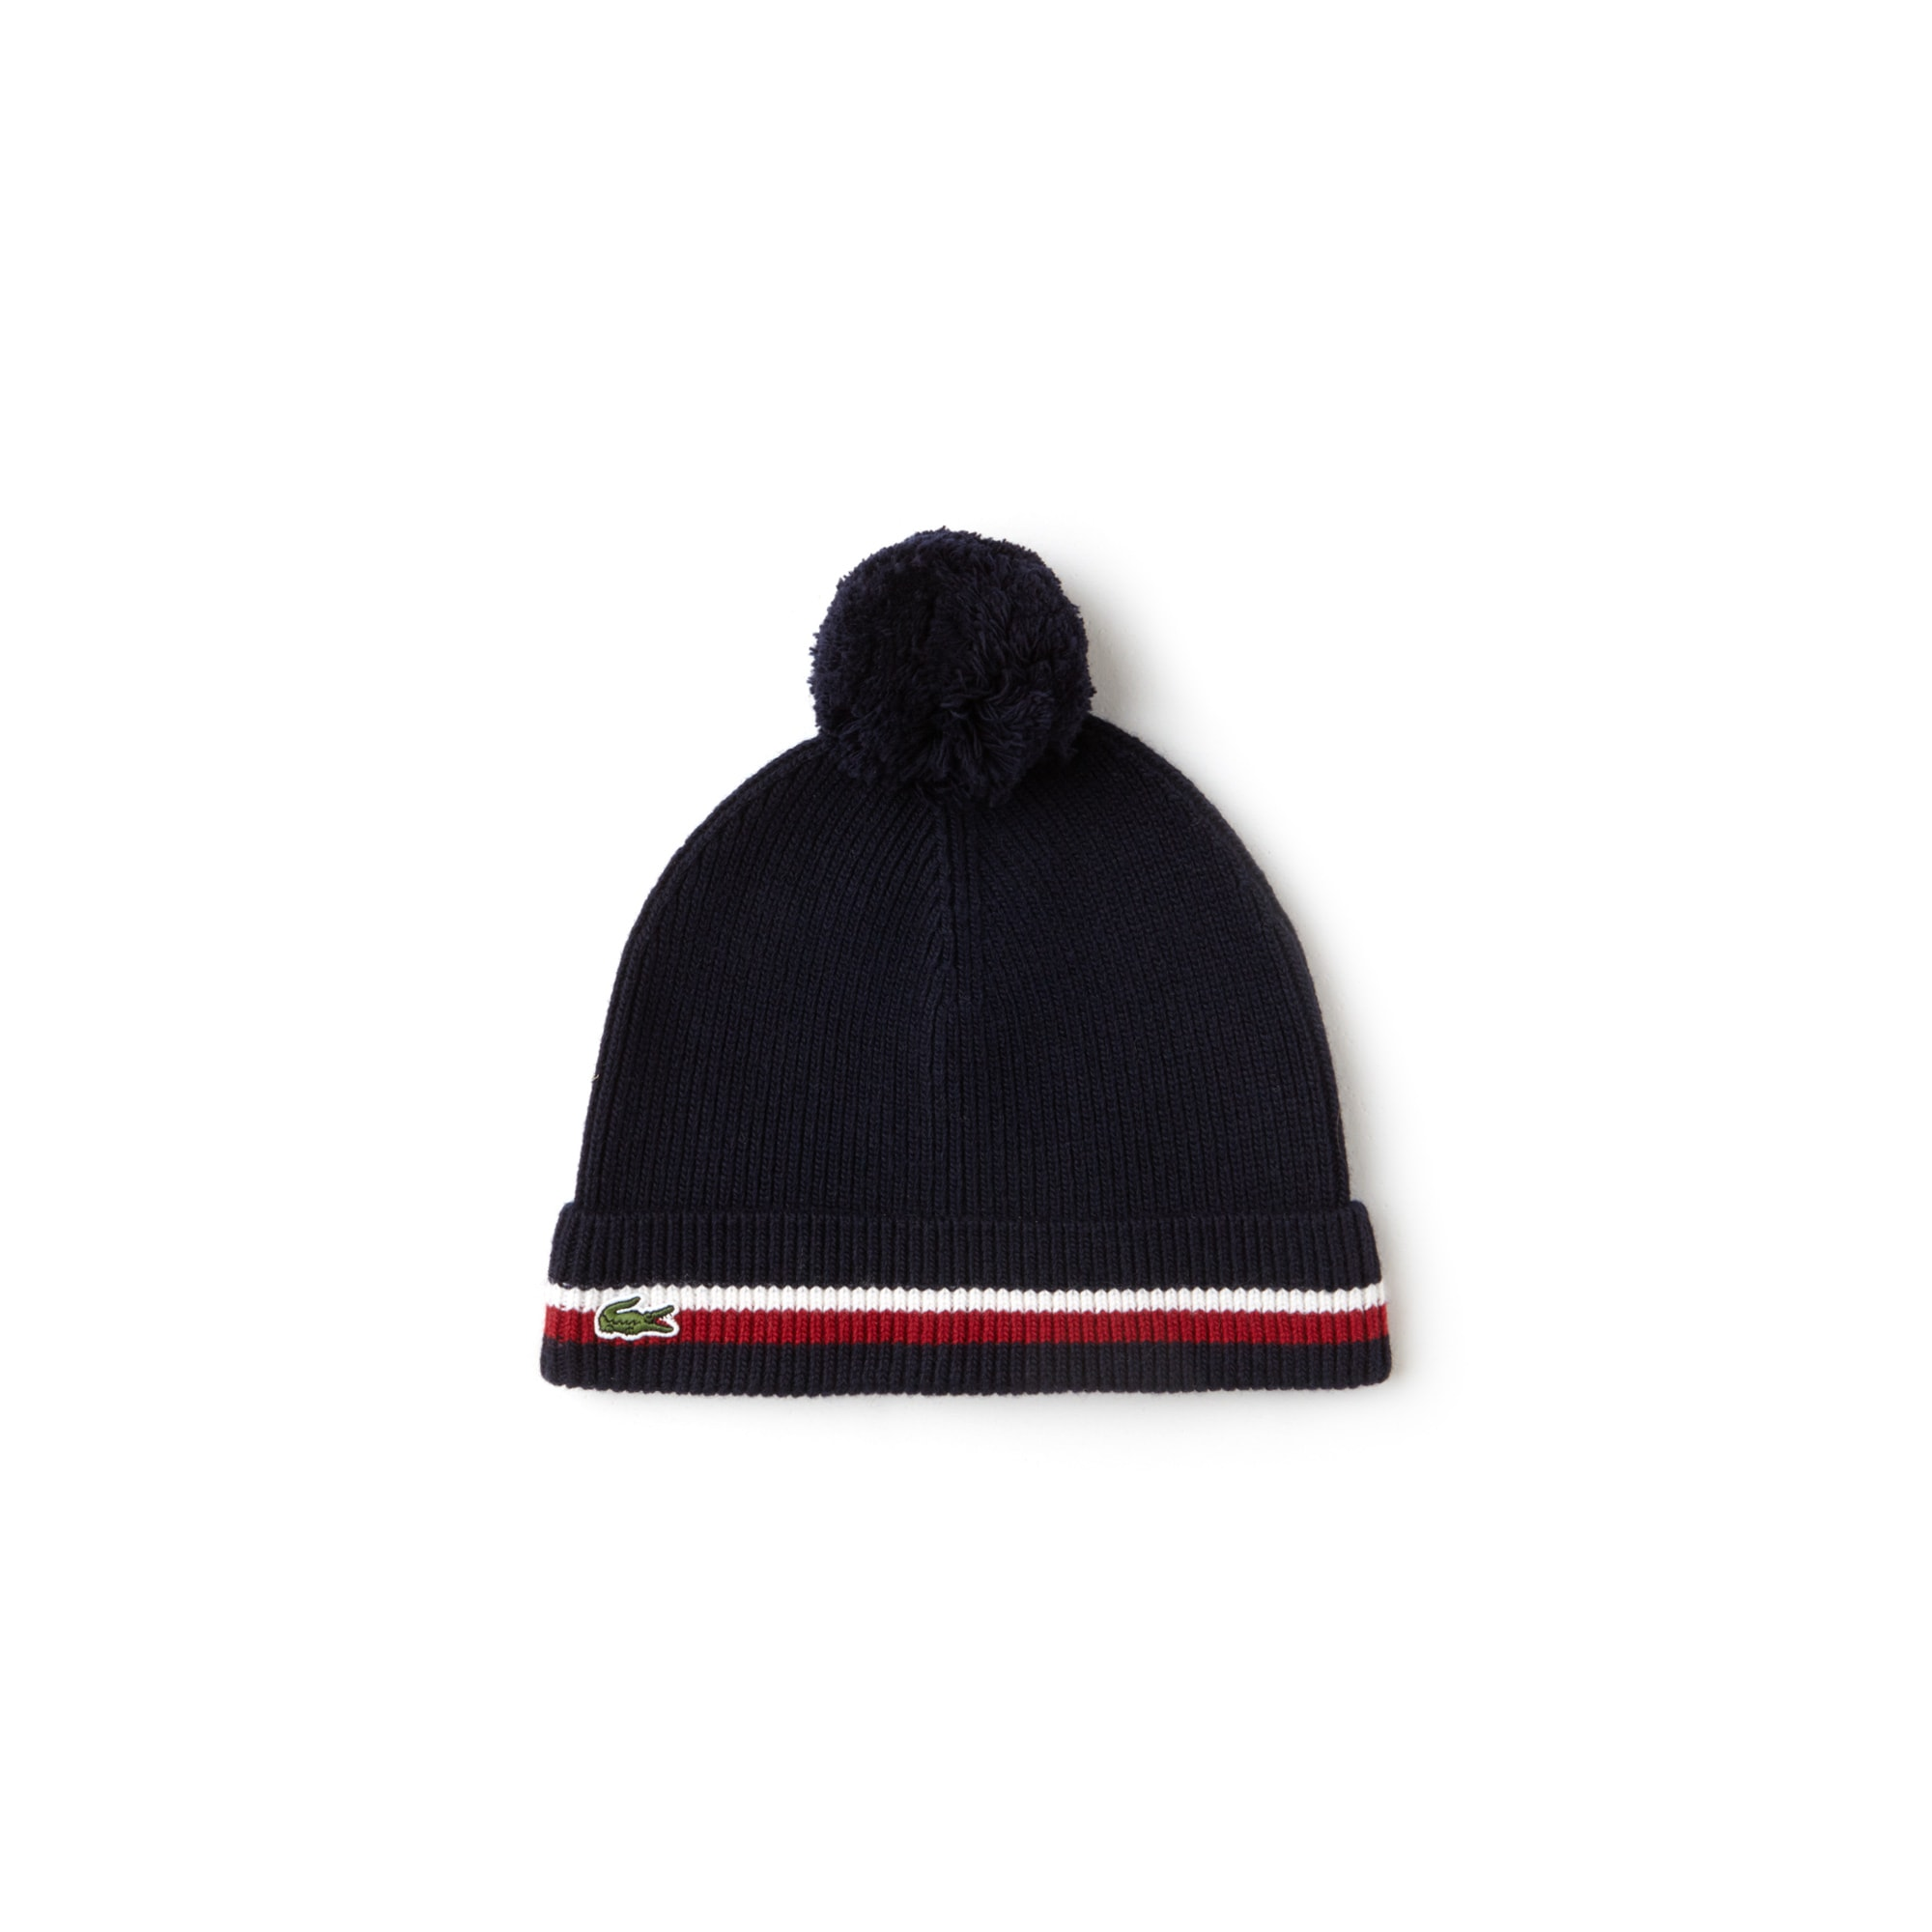 Boys' Wool And Cotton Pom-pom Beanie